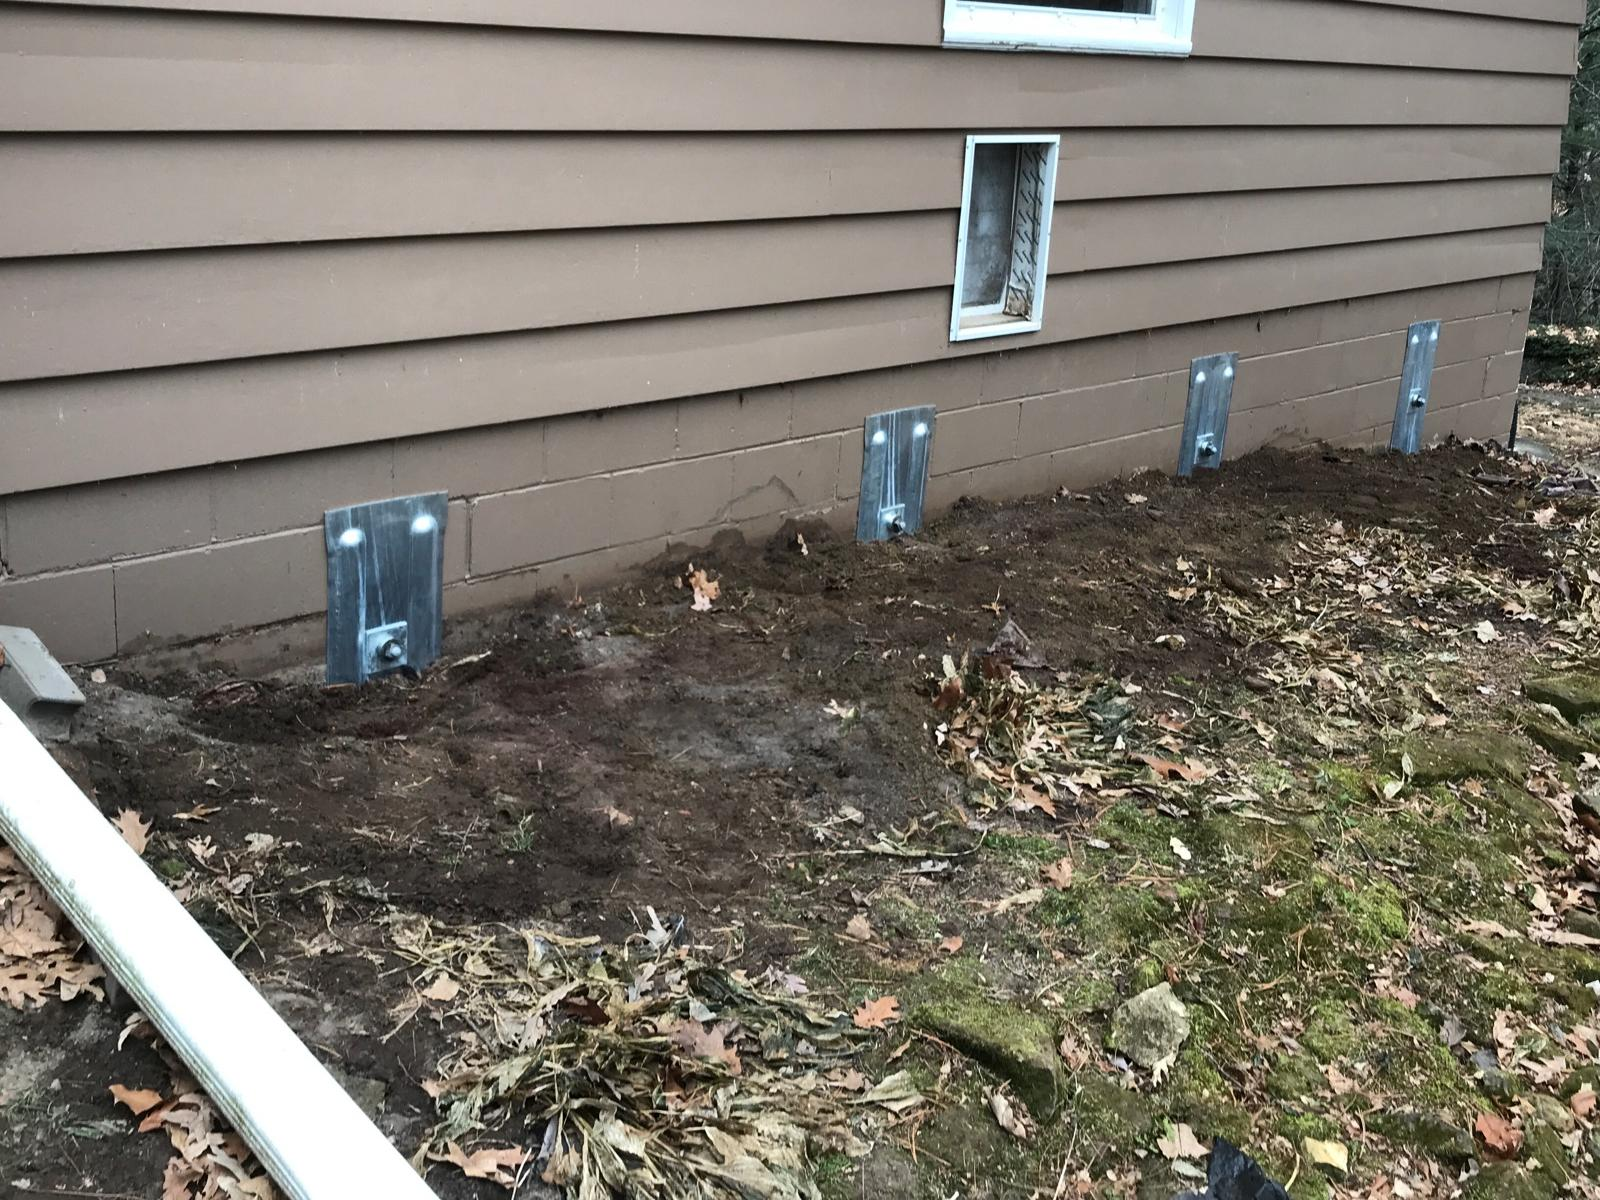 Cracked Foundation Wall in Tomah, WI - After Photo